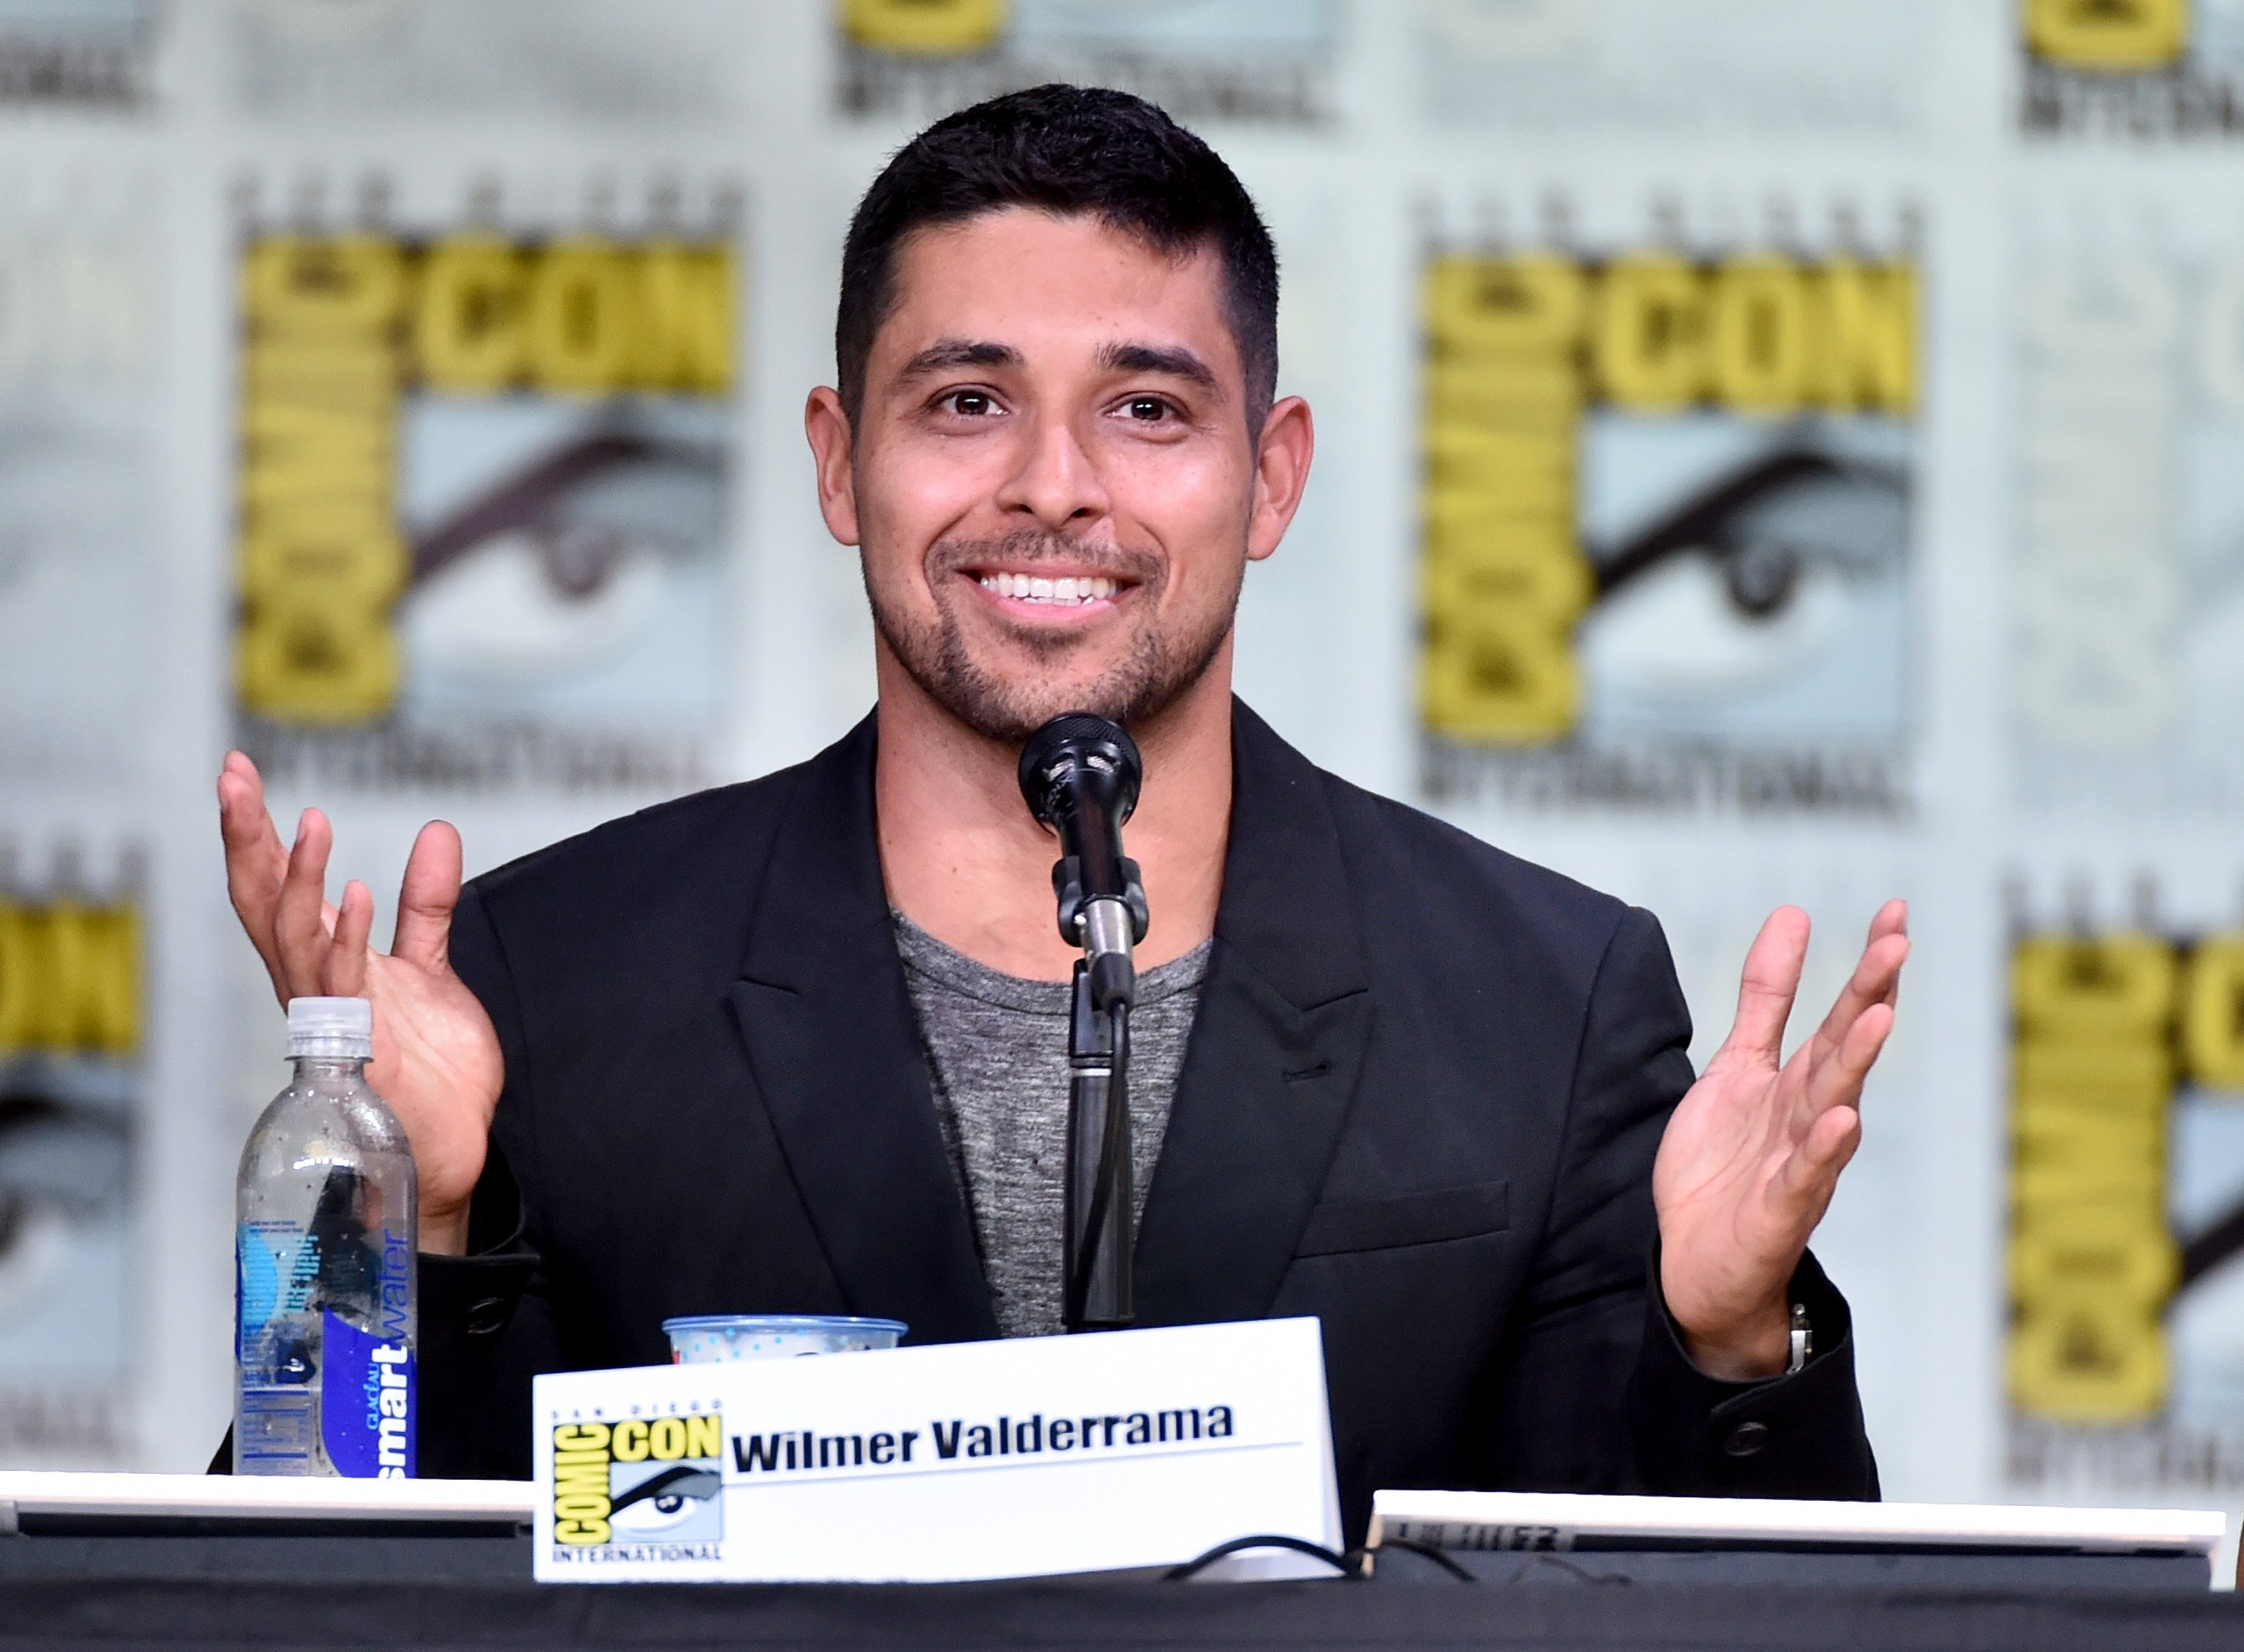 Wilmer Valderrama attends CBS Television Studios Block during Comic-Con International | Source: Getty Images